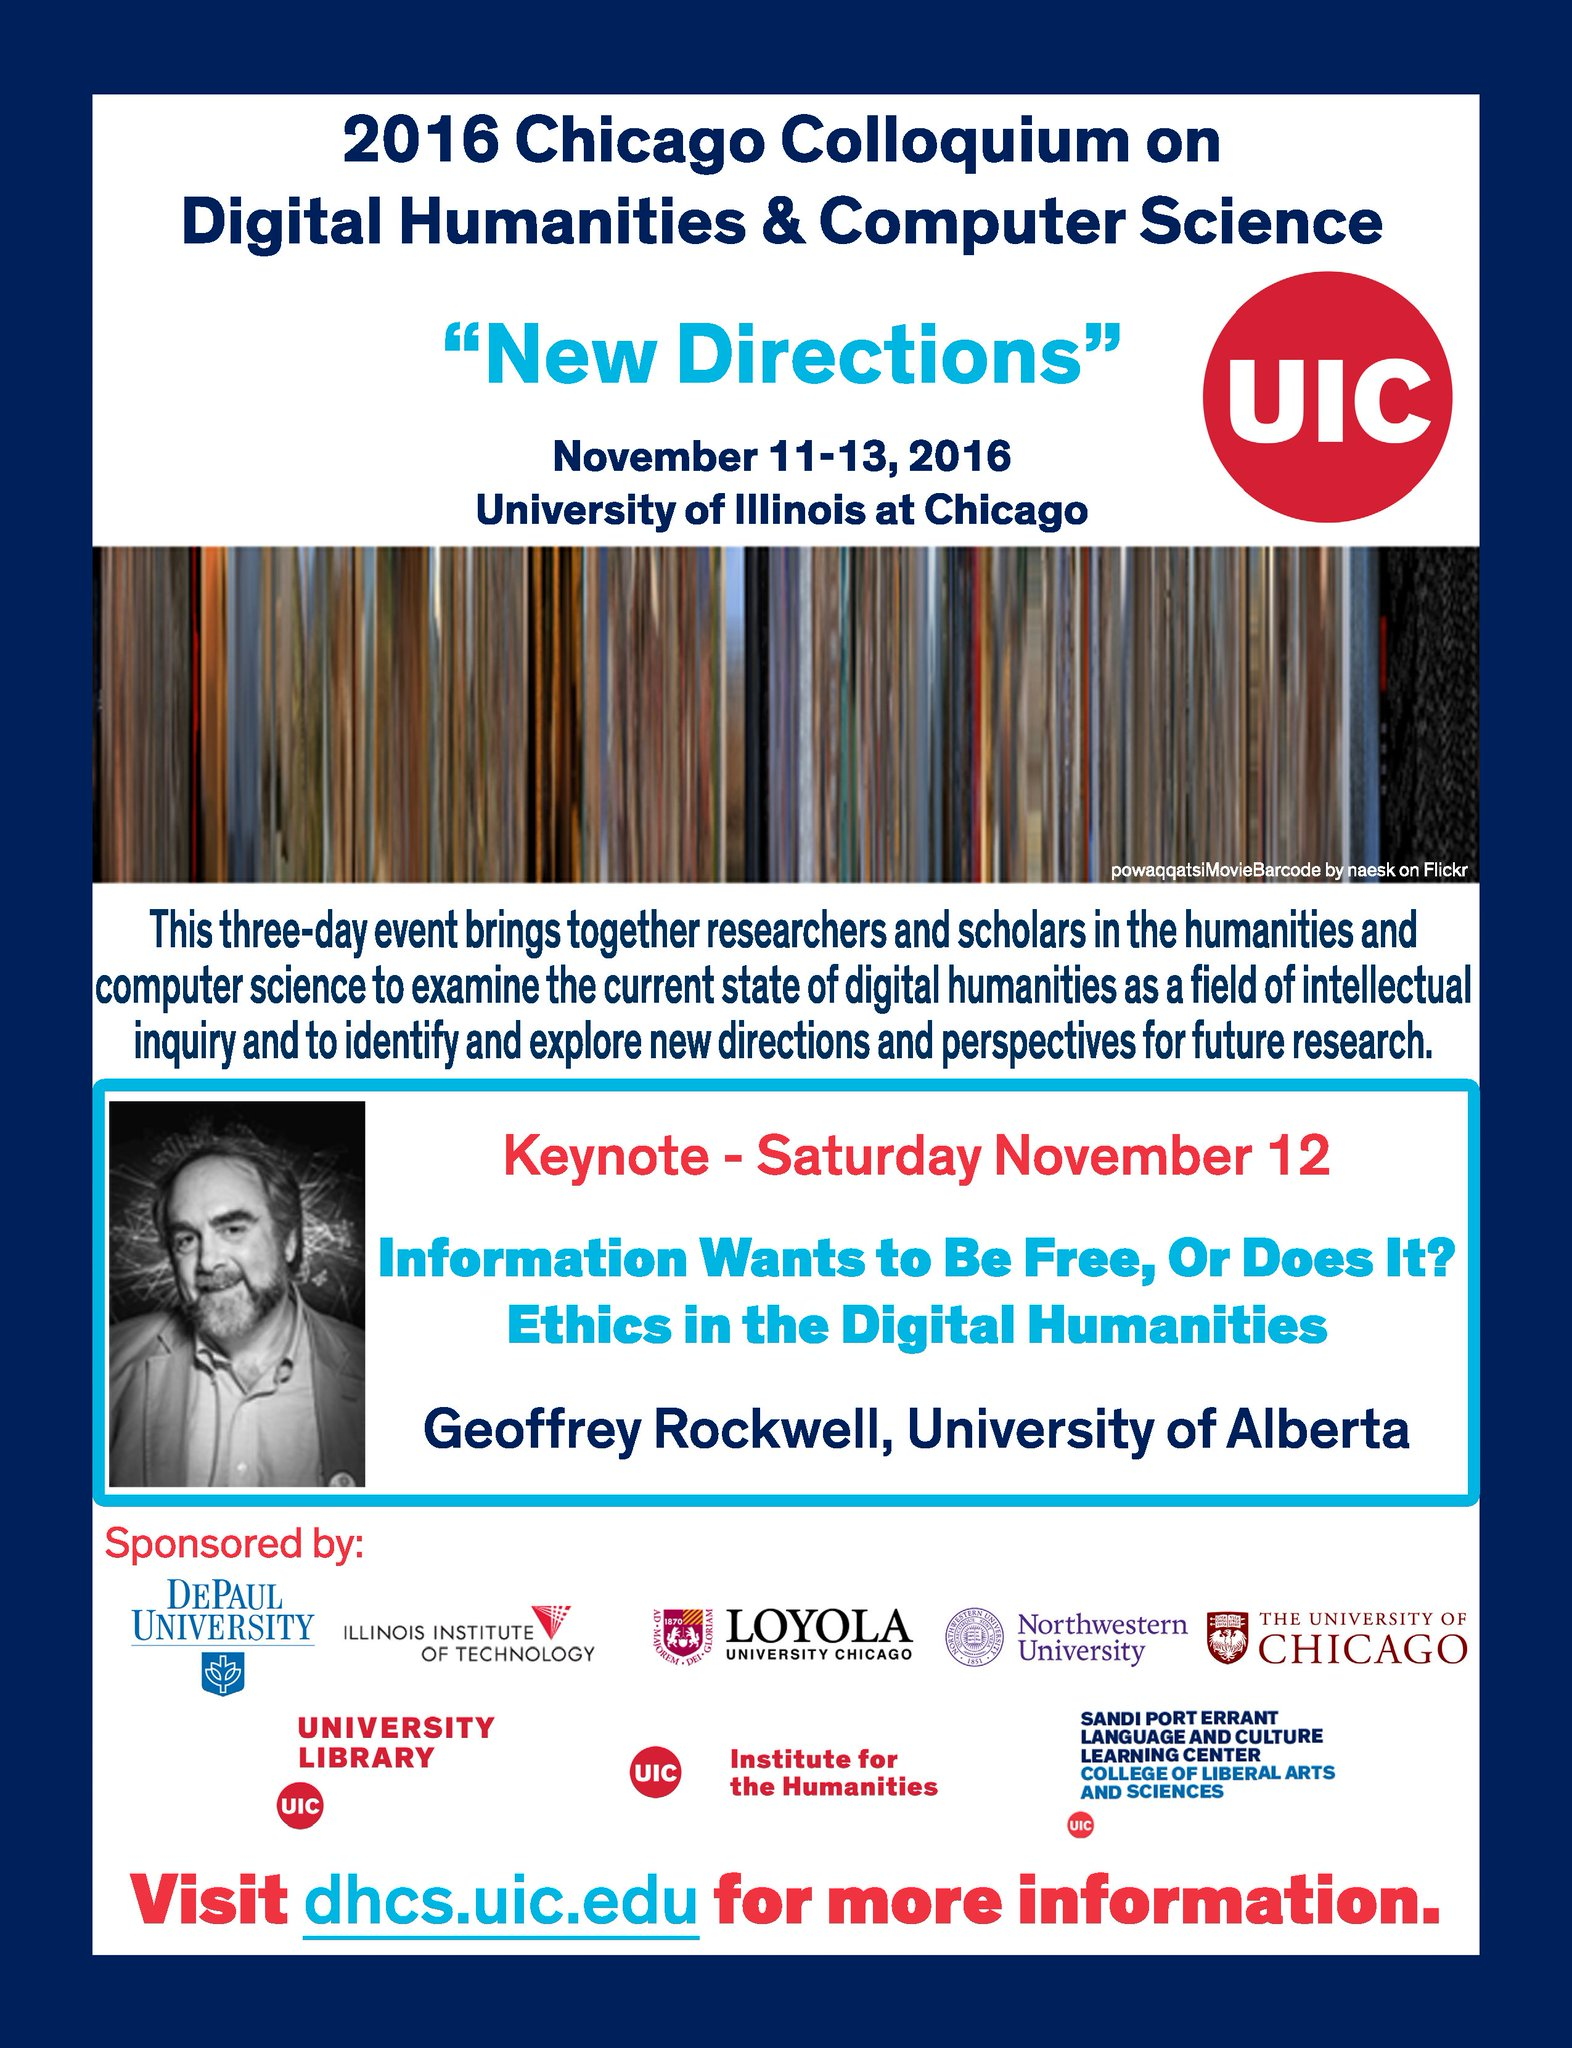 Chicago Colloquium on Dig. Humanities & Comp. Sci. Nov 11-13 w/ keynote by @GeoffRockwell! https://t.co/qqIkwTcCjI #DH #digitalhumanities https://t.co/bhtbCRtFHM